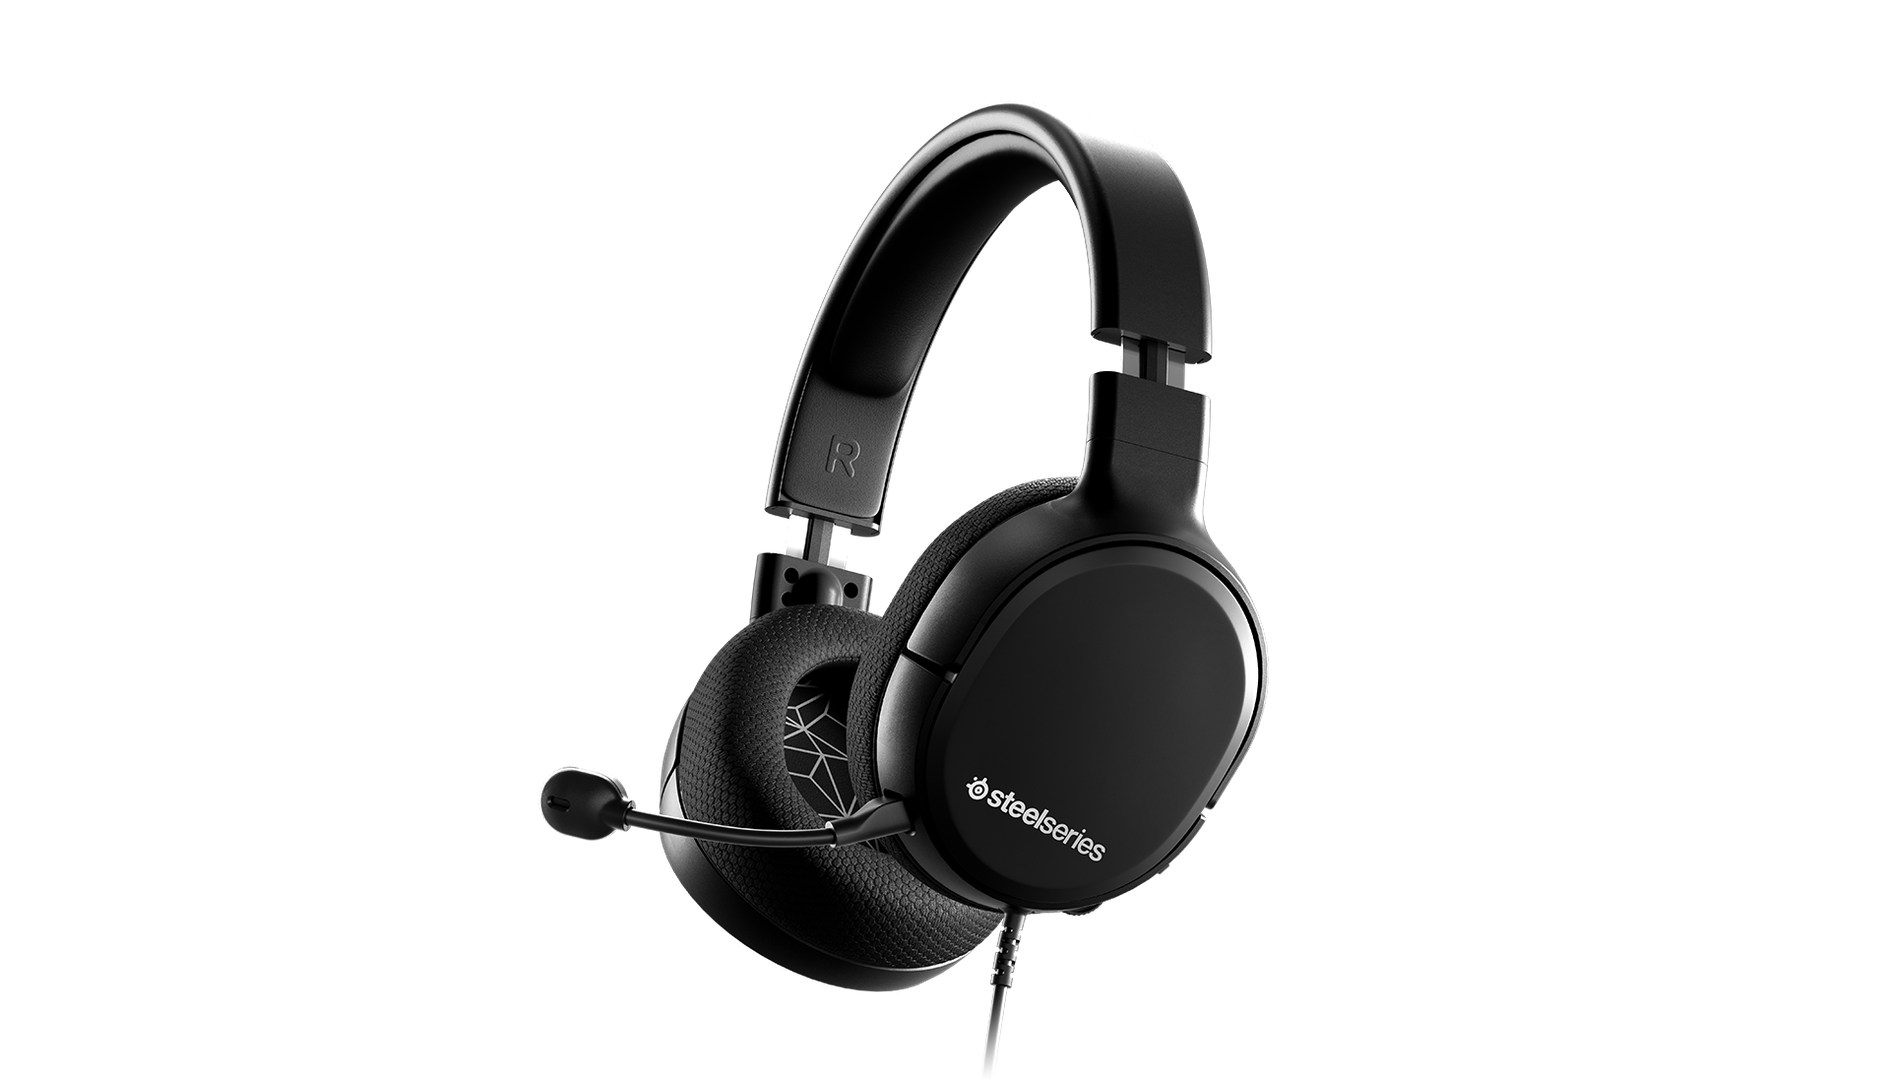 The Arctis 1 headset, looking sleek and fantastic, like you'll feel when you give it as a gift.